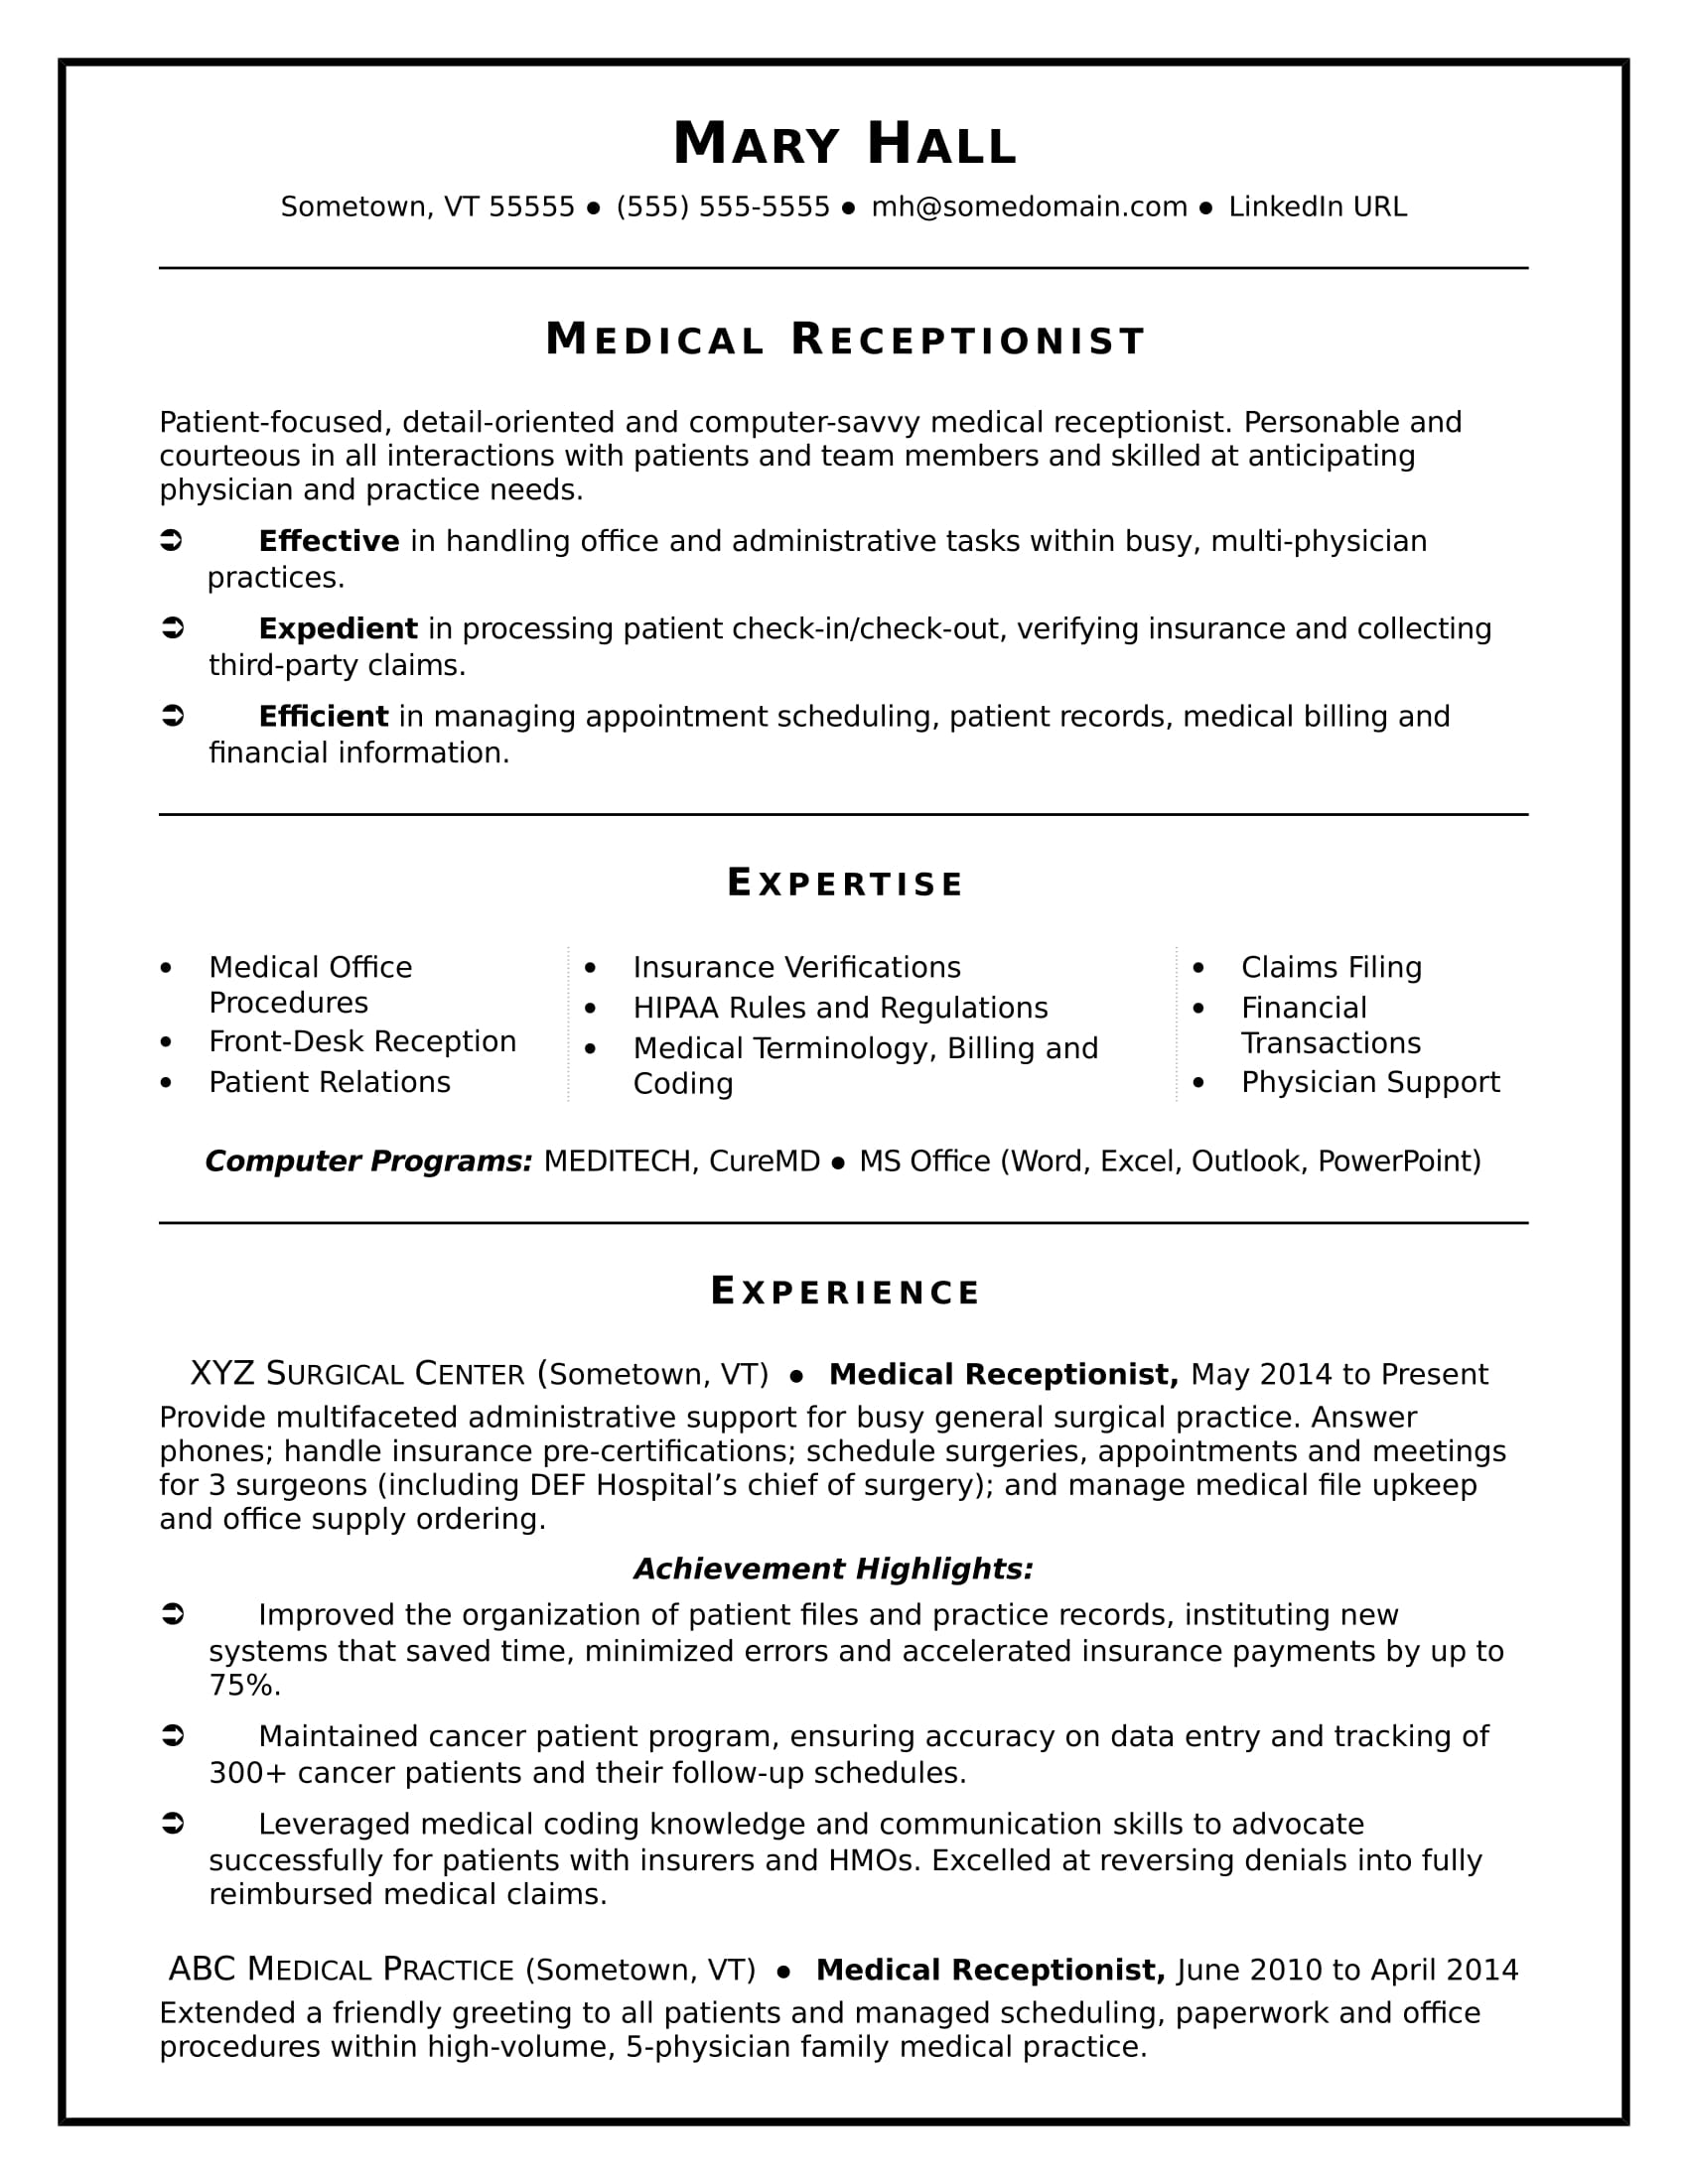 receptionist duties resume  Medical Receptionist Resume Sample | Monster.com